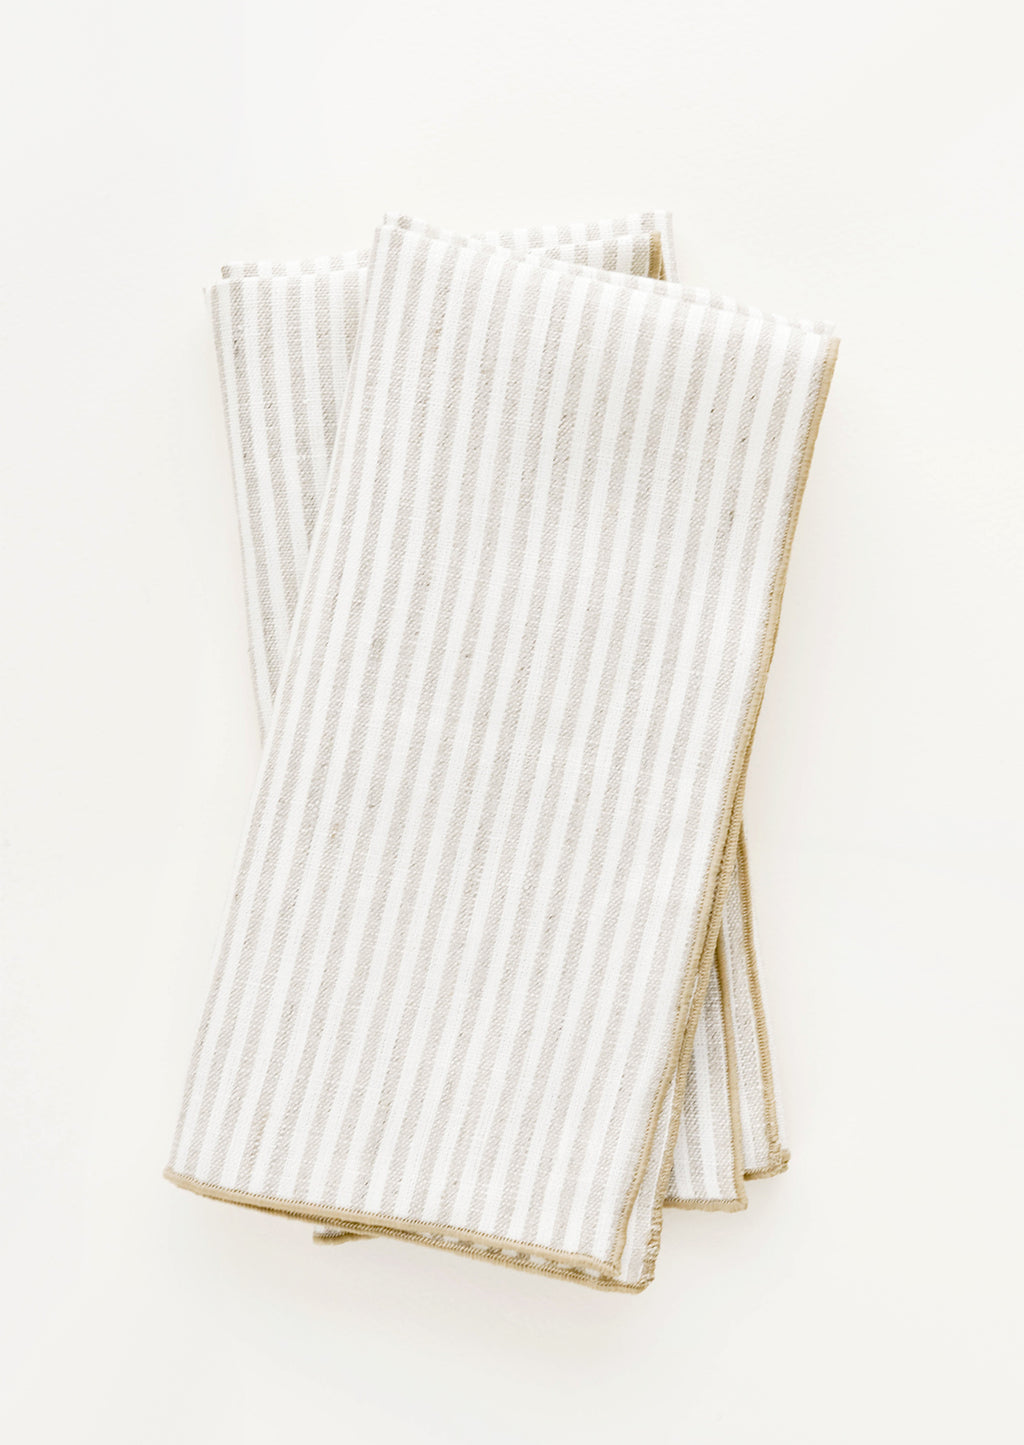 Flax Stripe: Pair of ivory folded Linen Napkins with light brown vertical stripe.